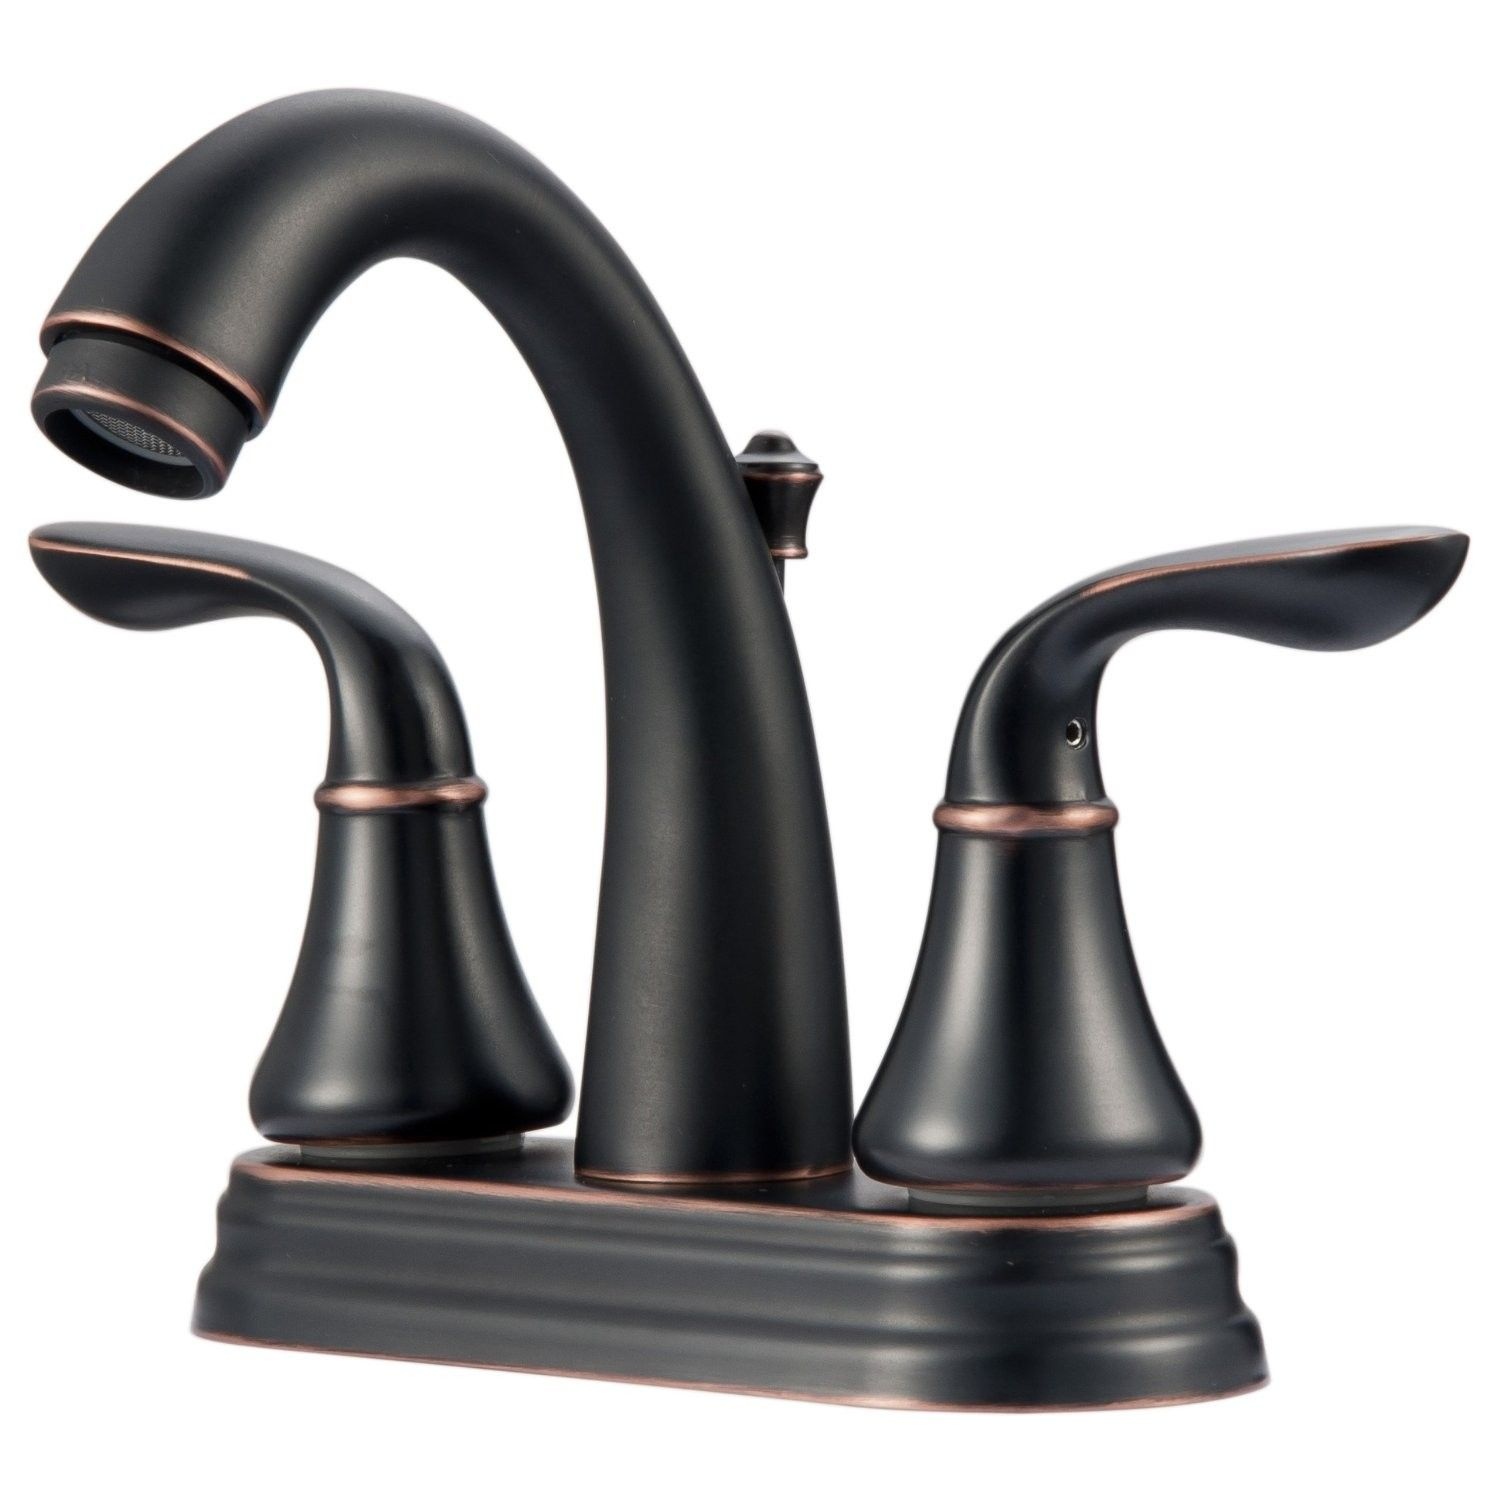 Ultra Faucets UF45725 Centerset Bathroom Sink Lavatory Faucet, Oil ...